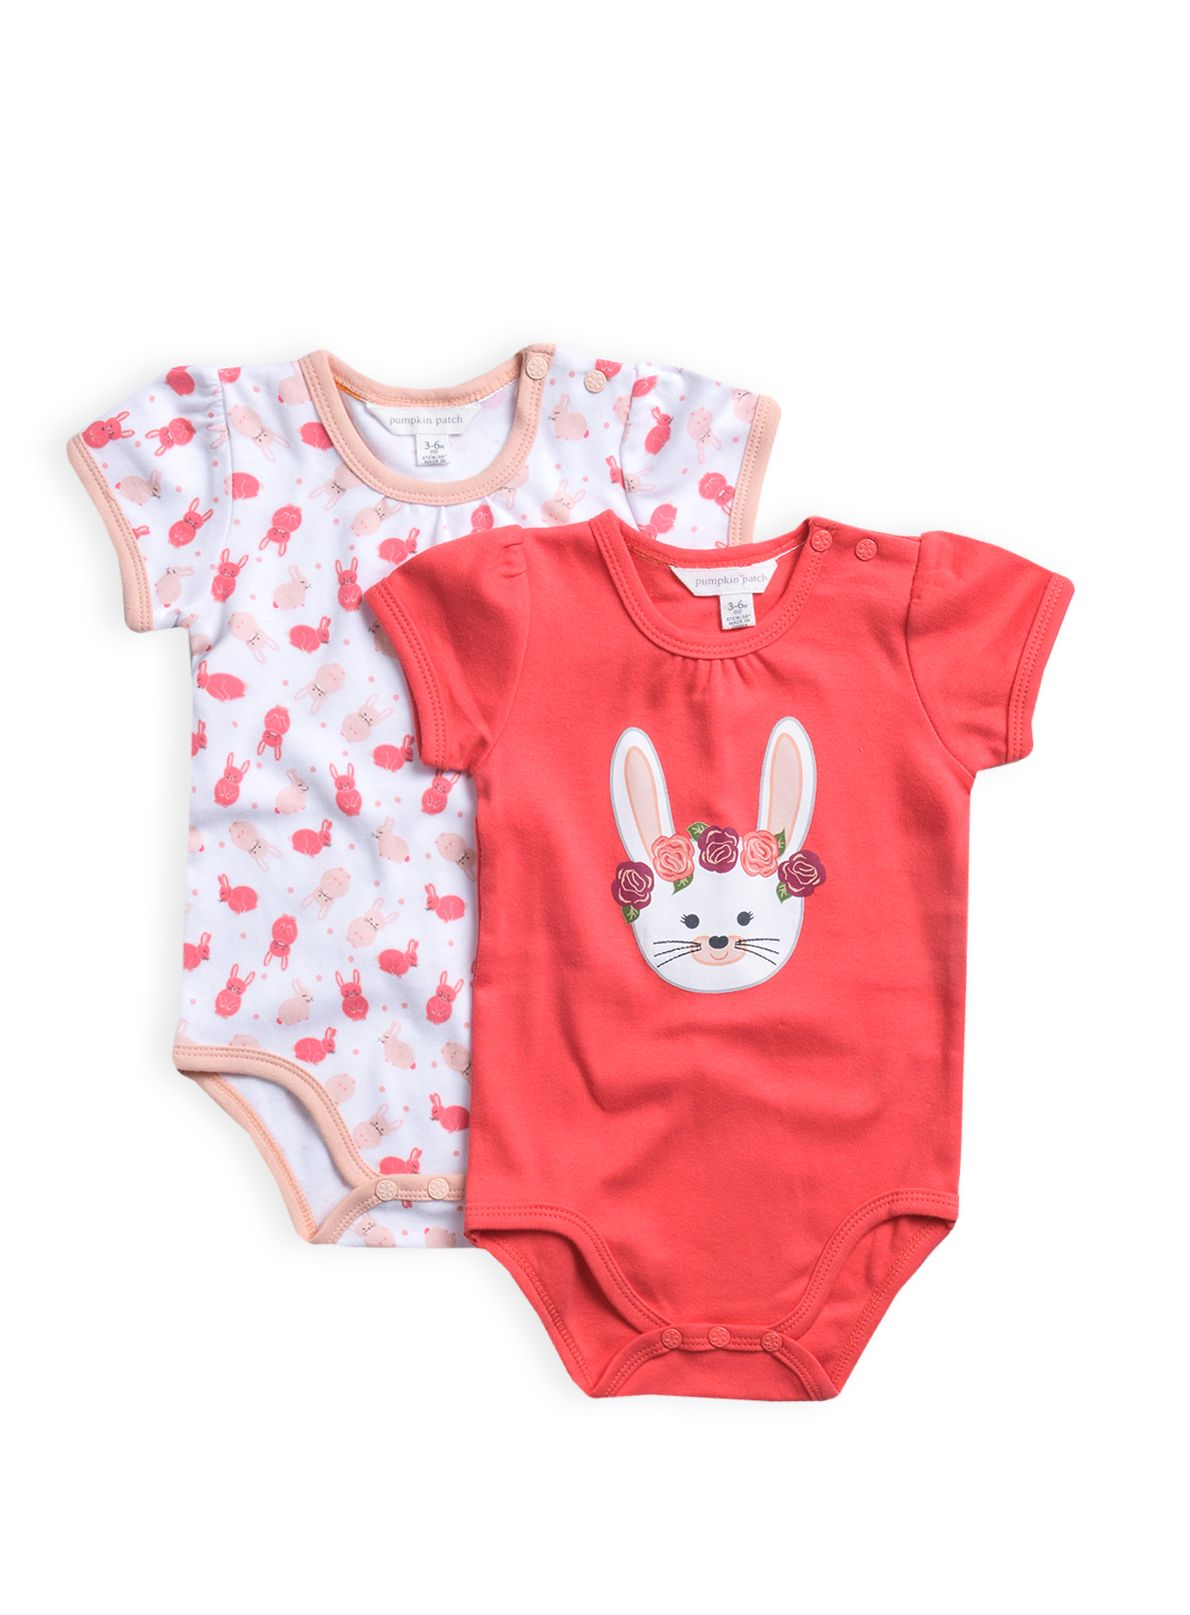 Girls 2pk bodysuits